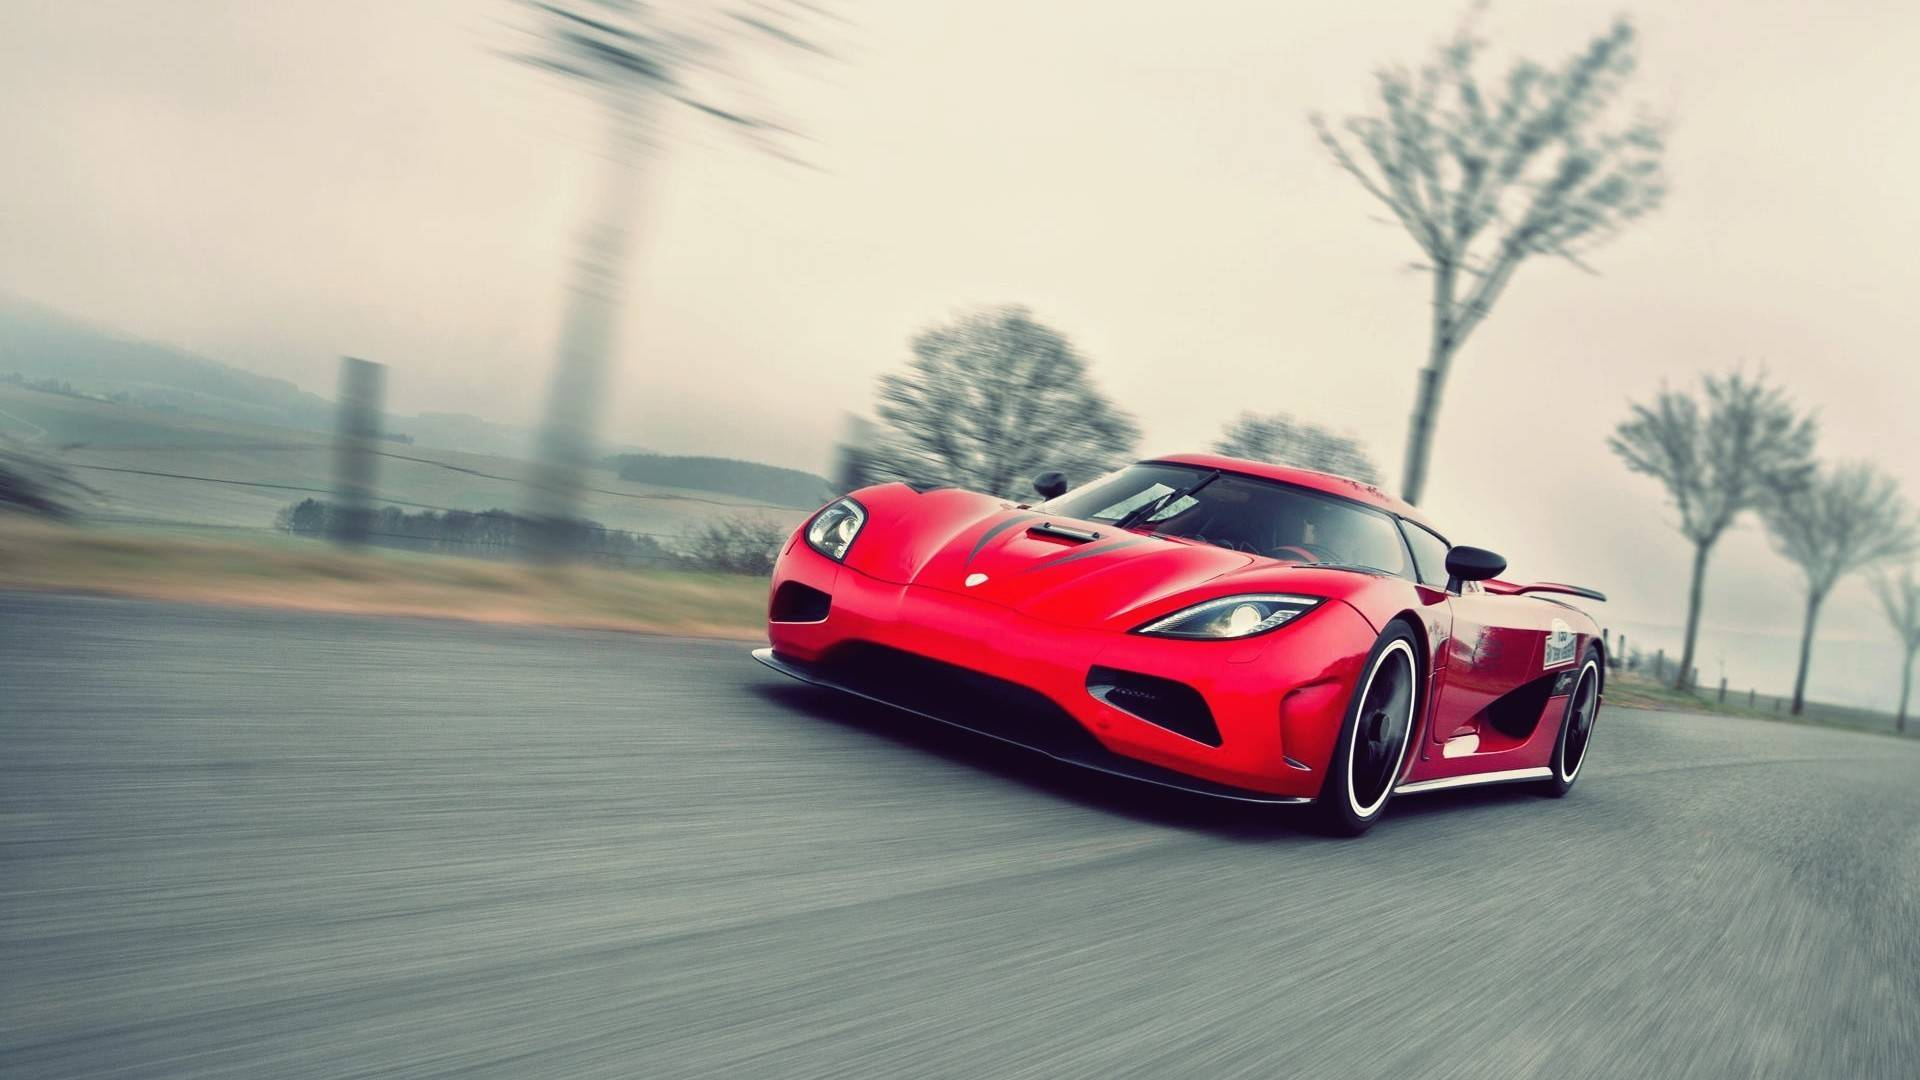 Koenigsegg Agera R Wallpapers High Quality | Download Free